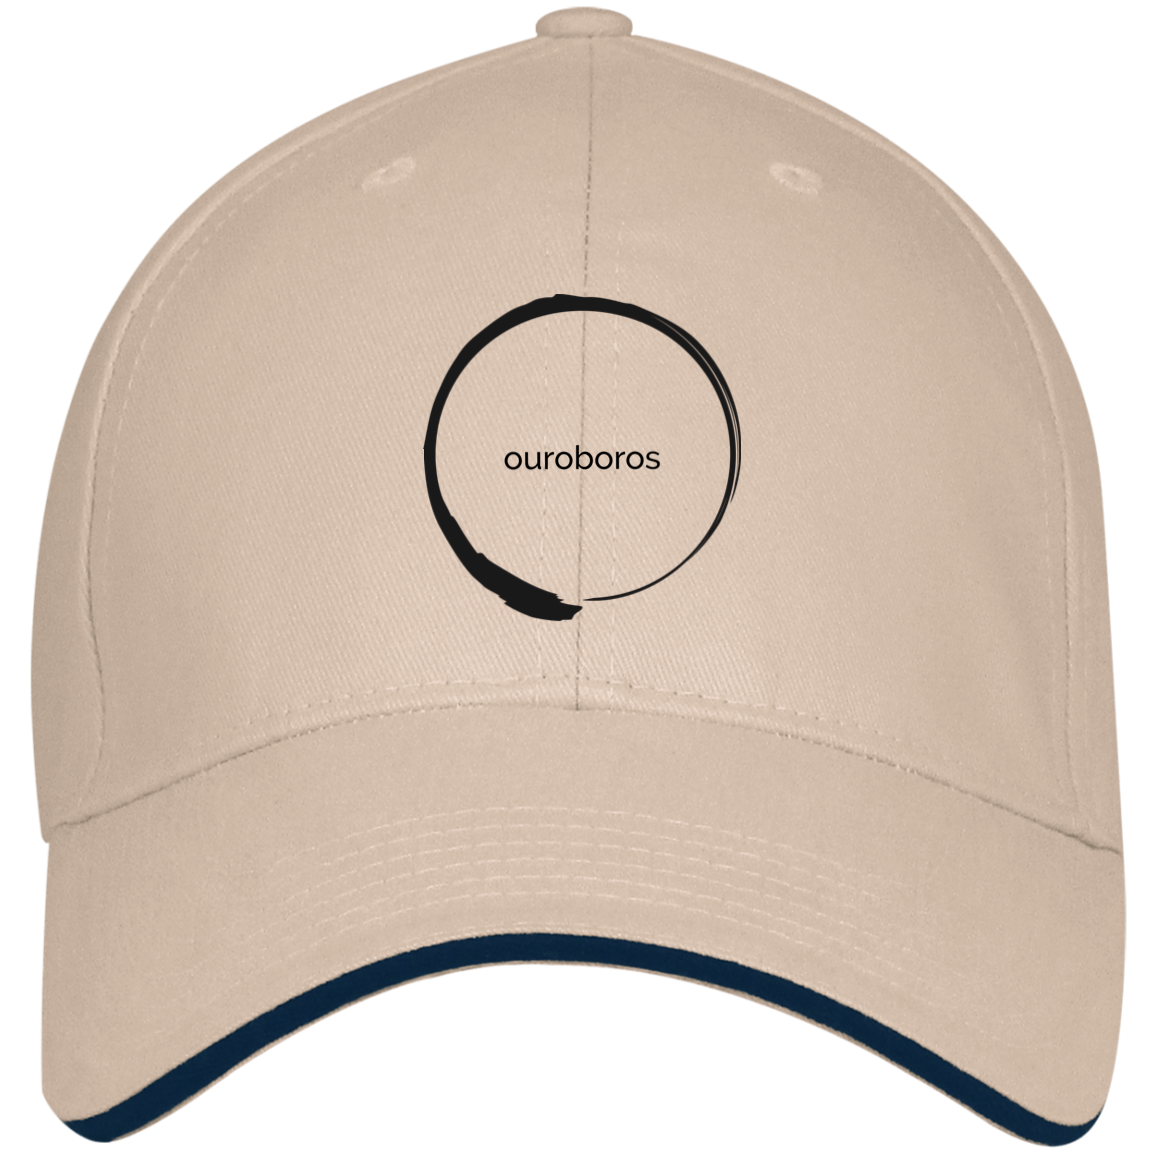 Ouroboros USA Made Structured Twill Cap With Sandwich Visor